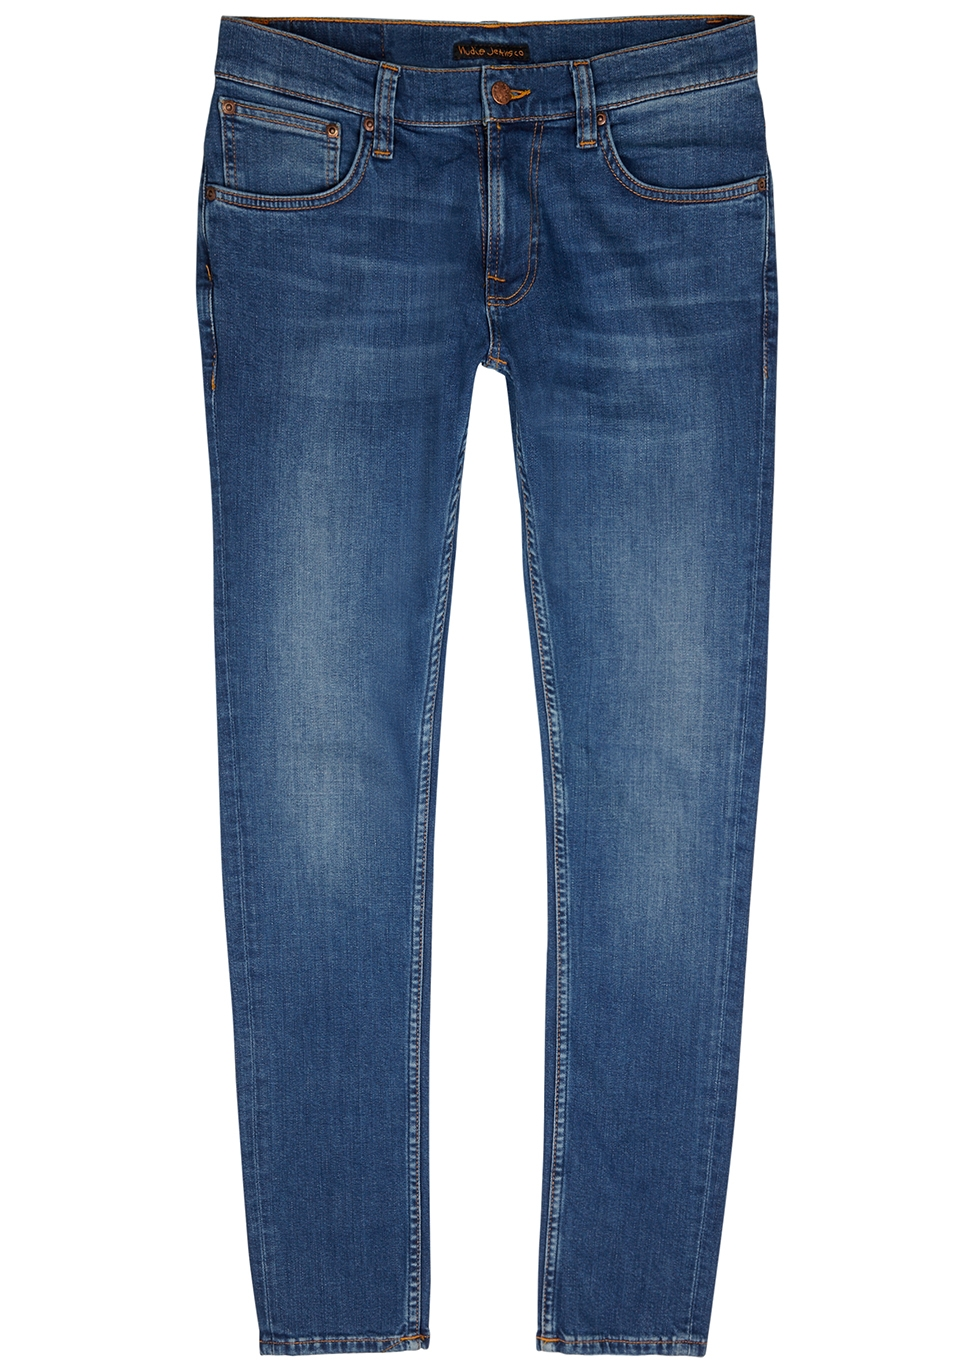 Tight Terry blue skinny jeans